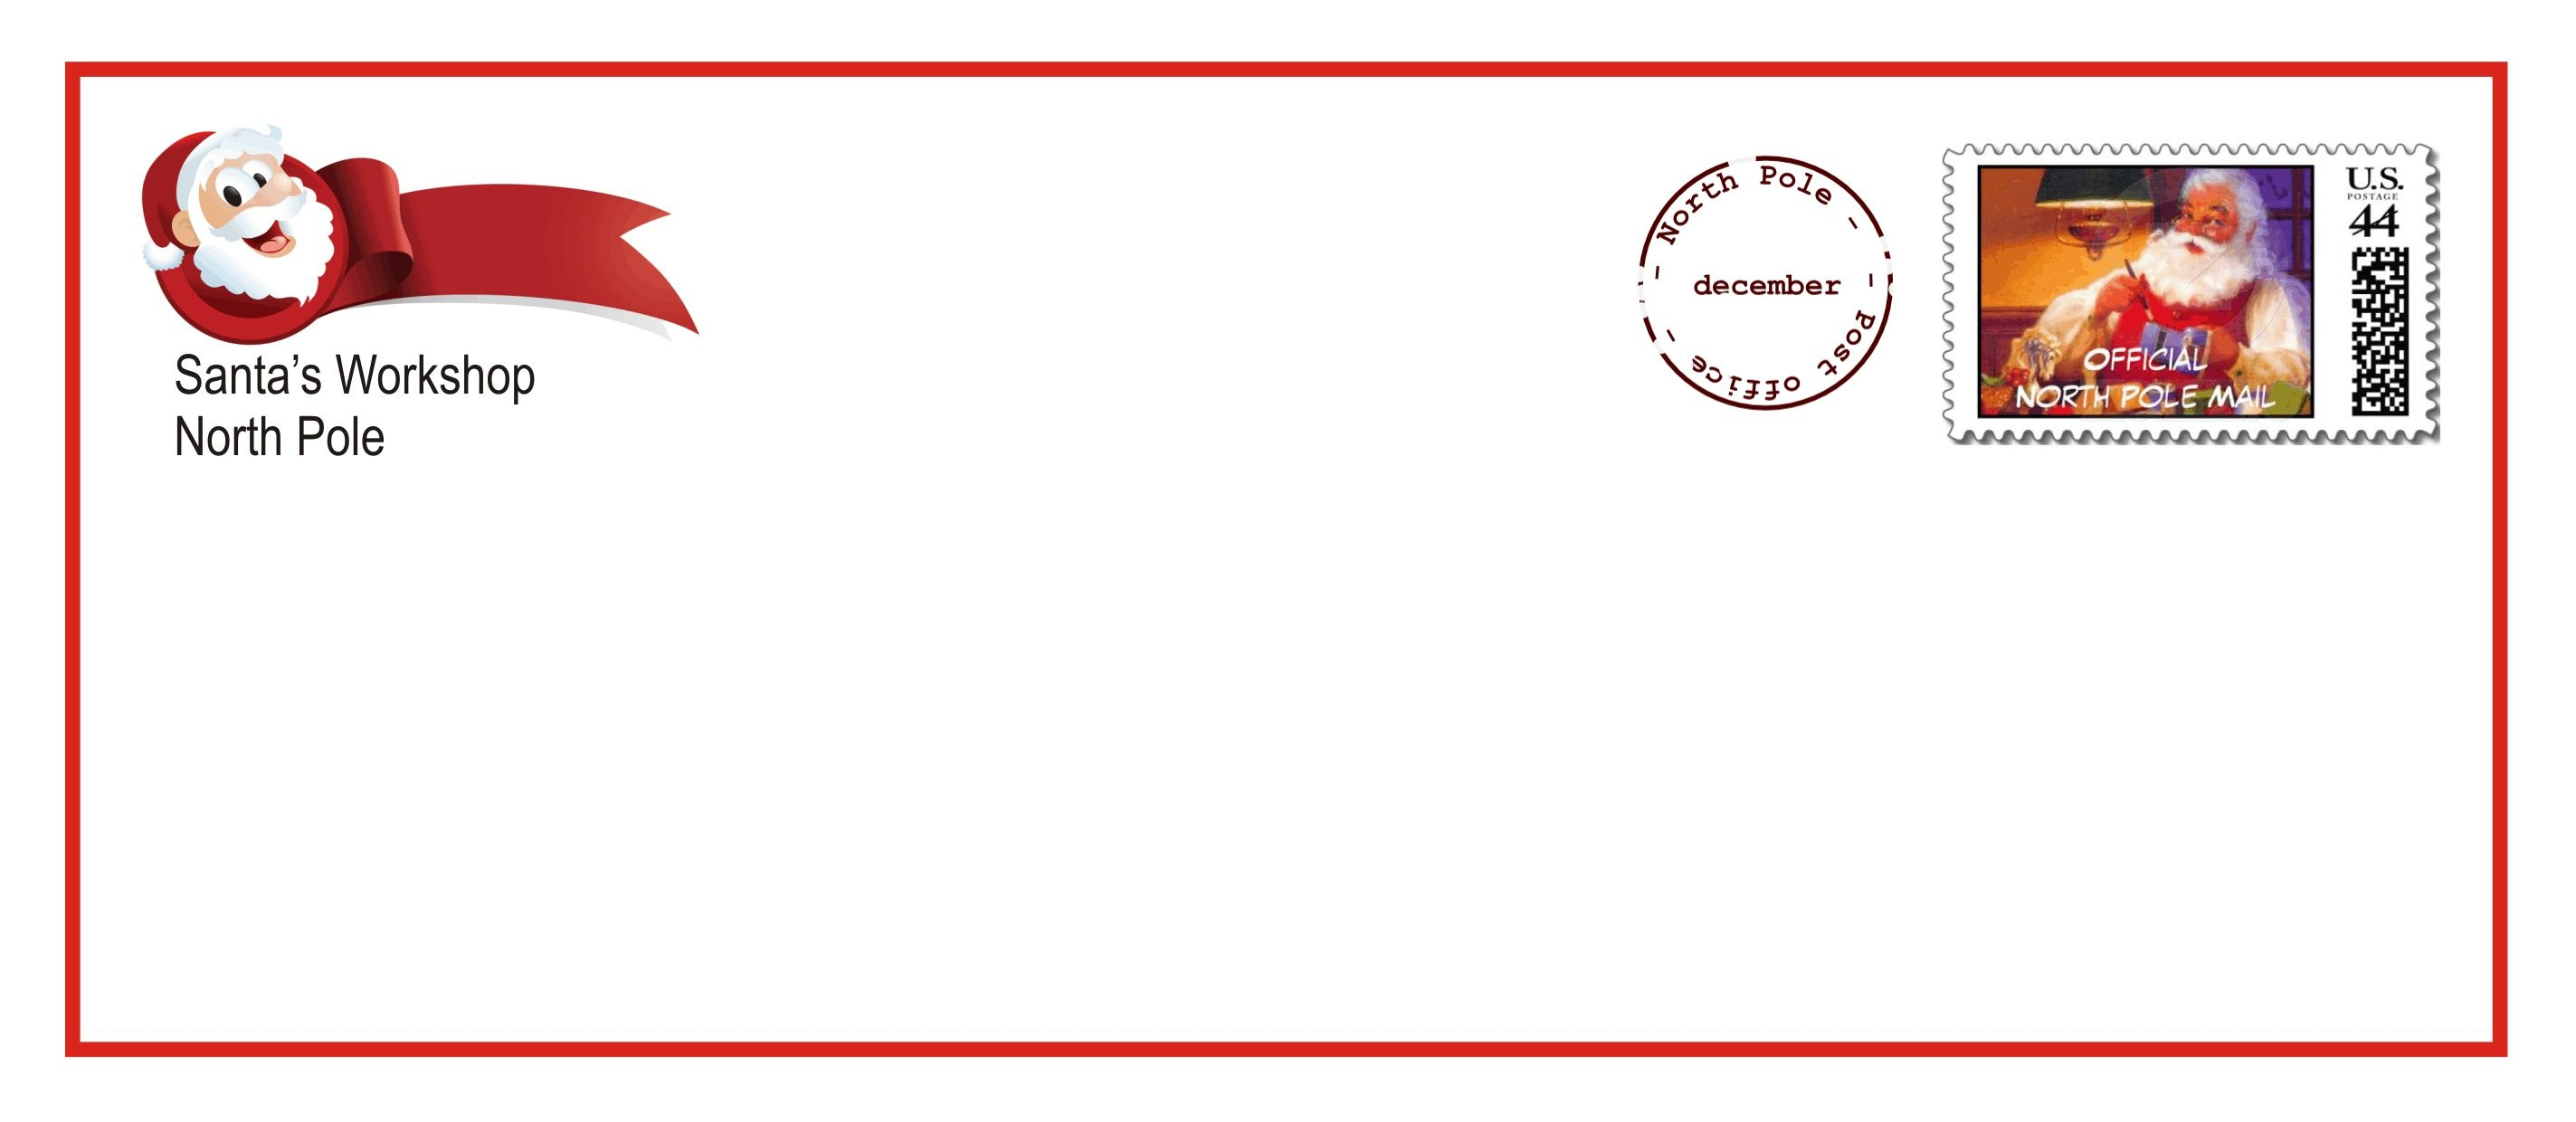 Printable Santa Letter Envelopes That Come With The Upgraded Letter - North Pole Stationary Printable Free